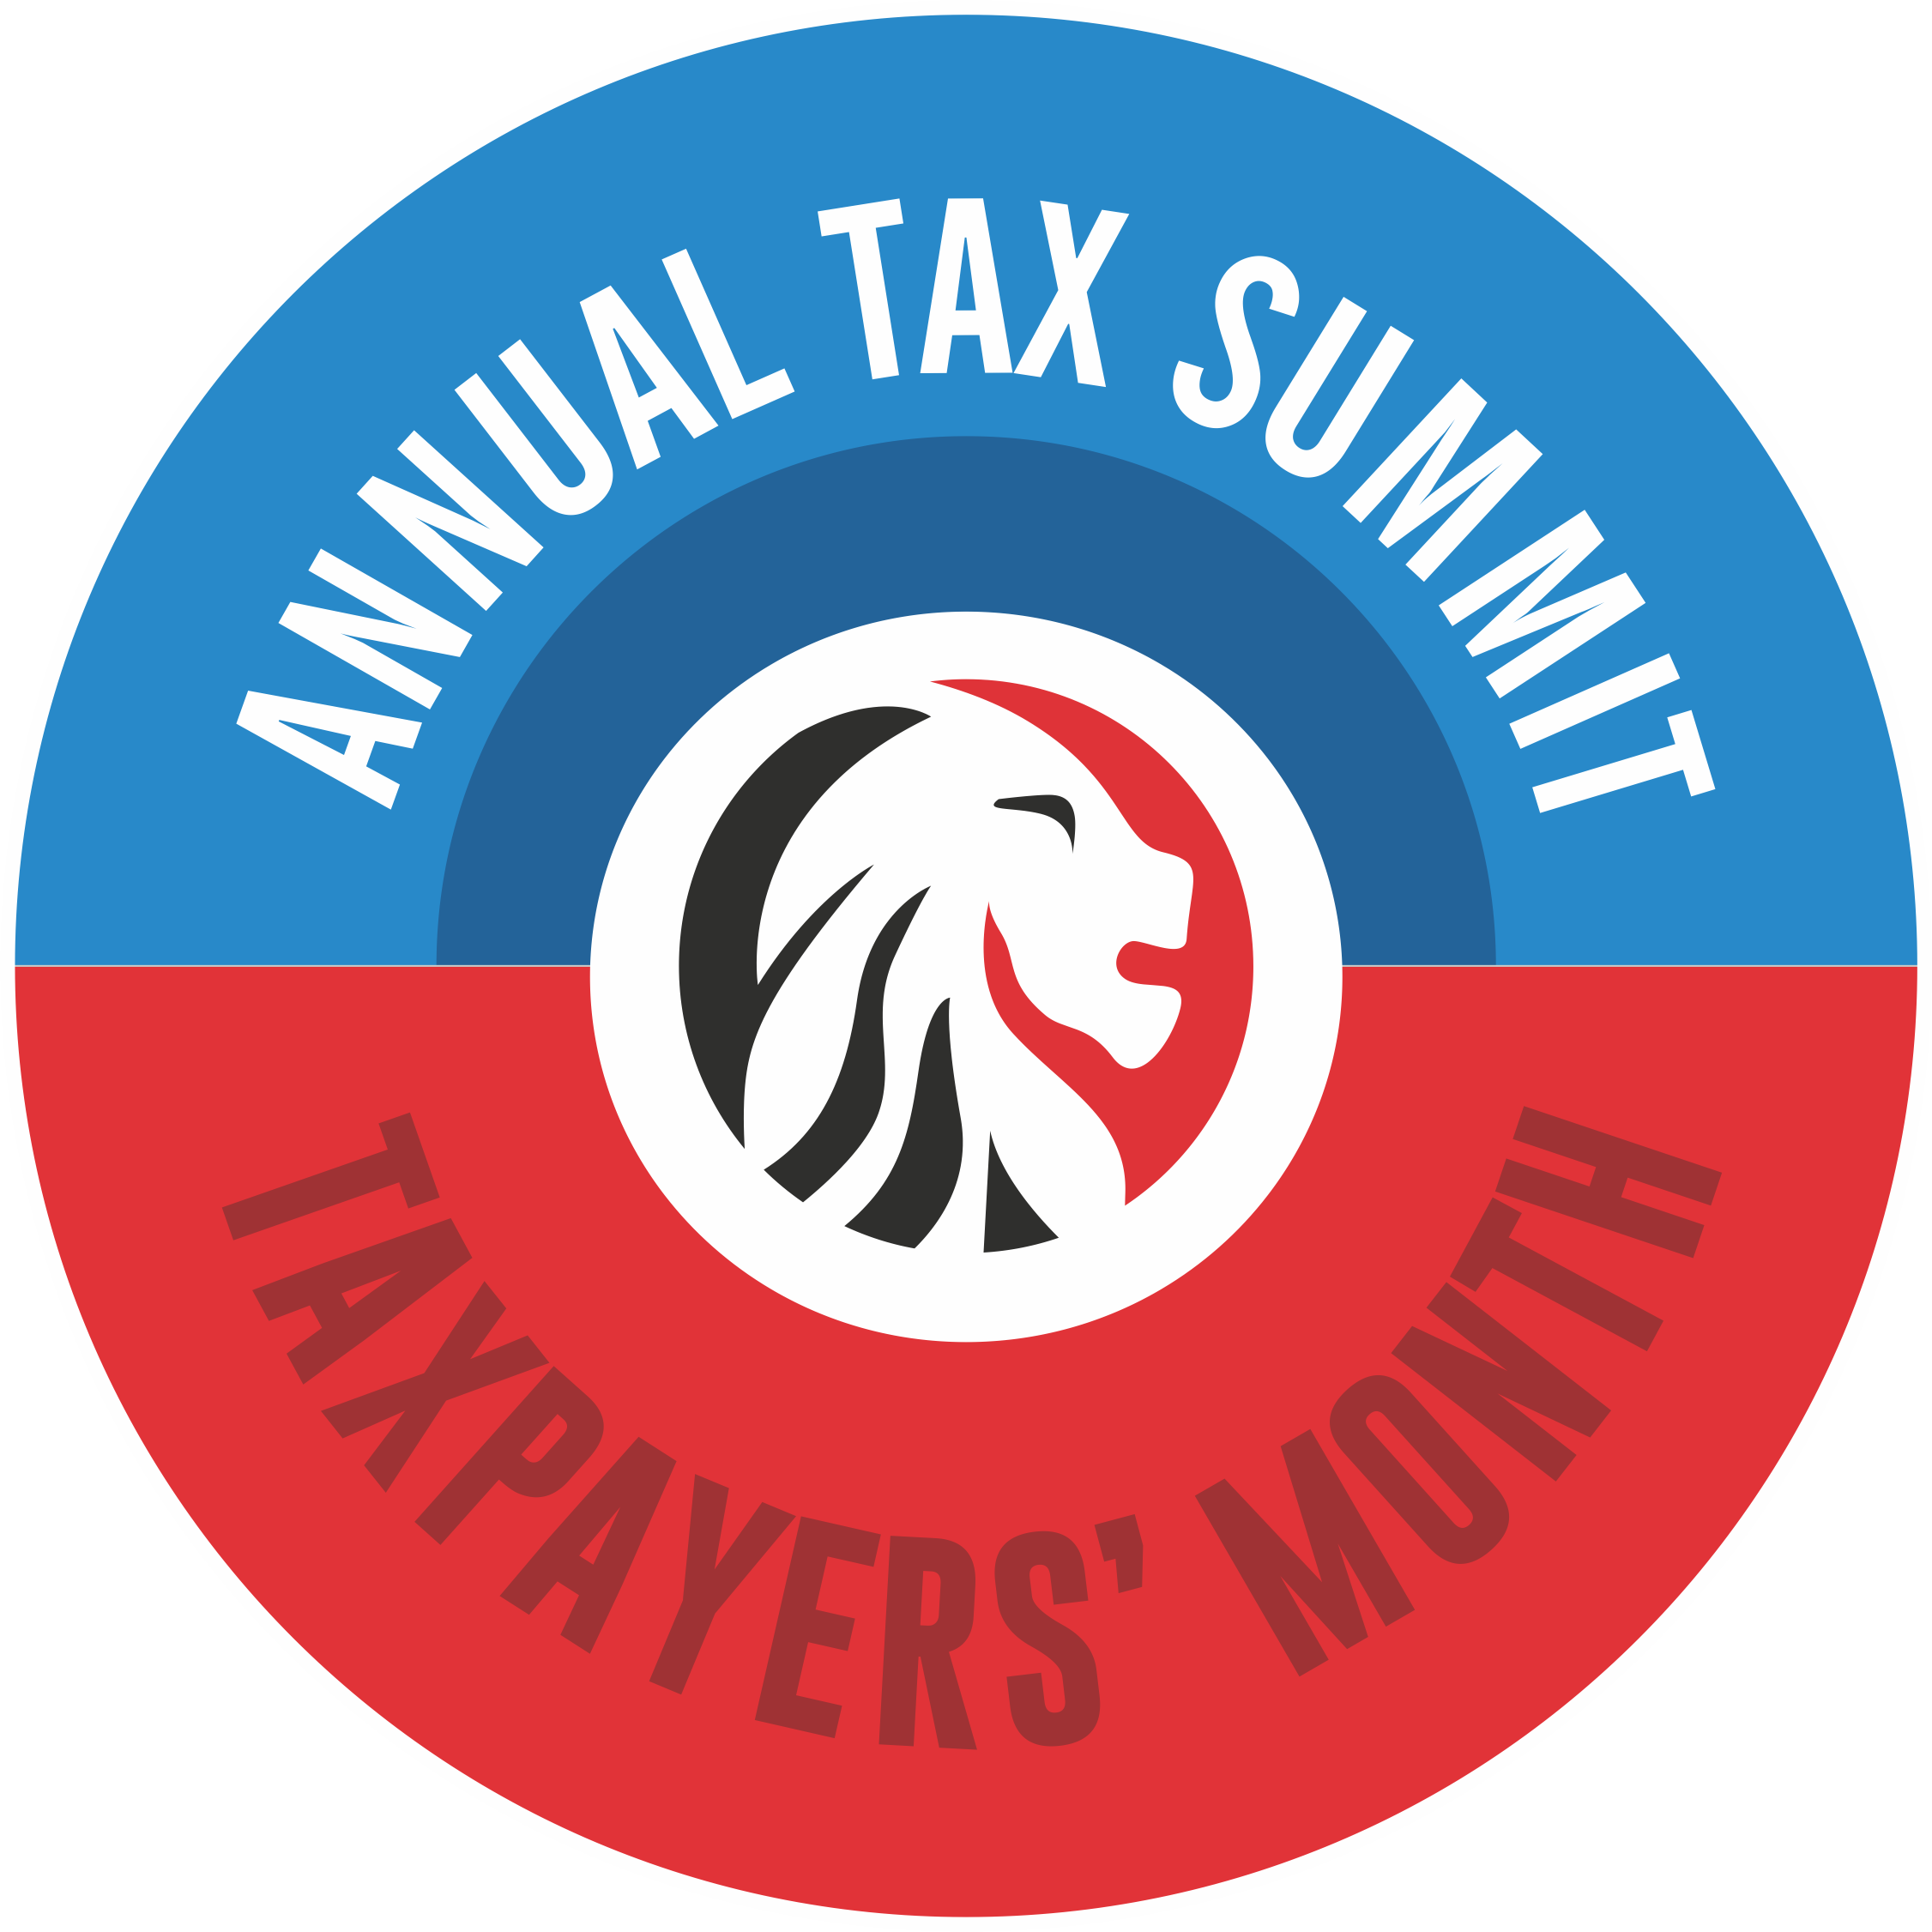 The Tax Summit